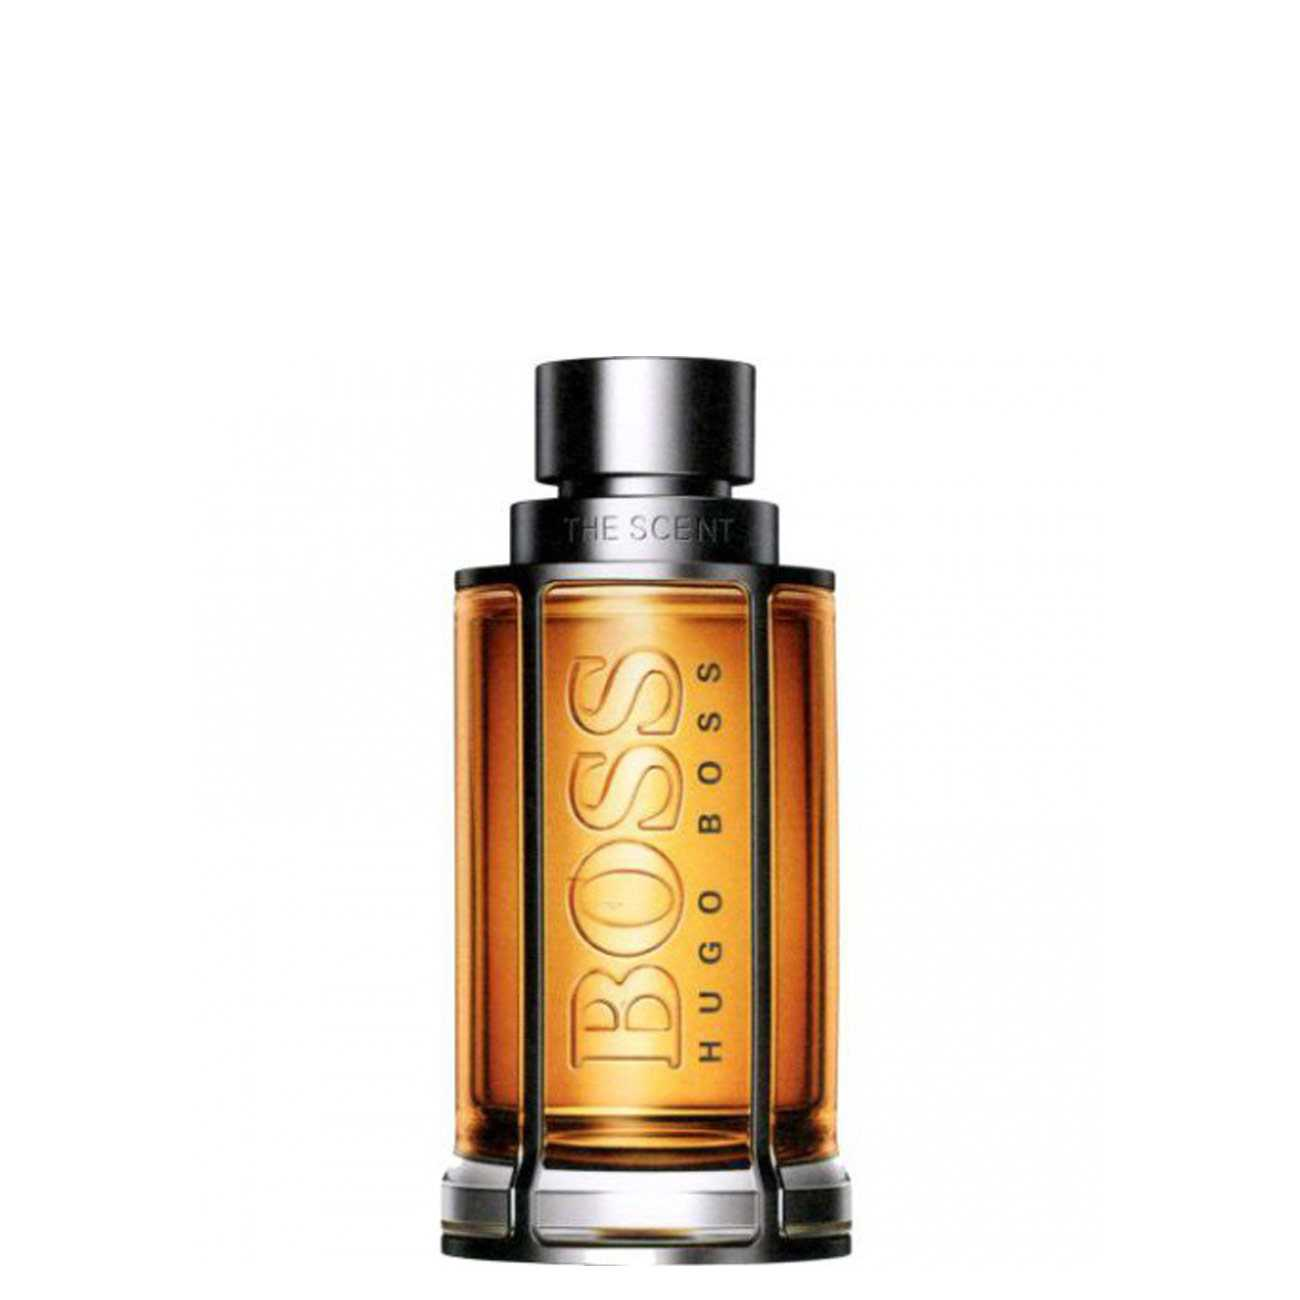 The Scent 50ml